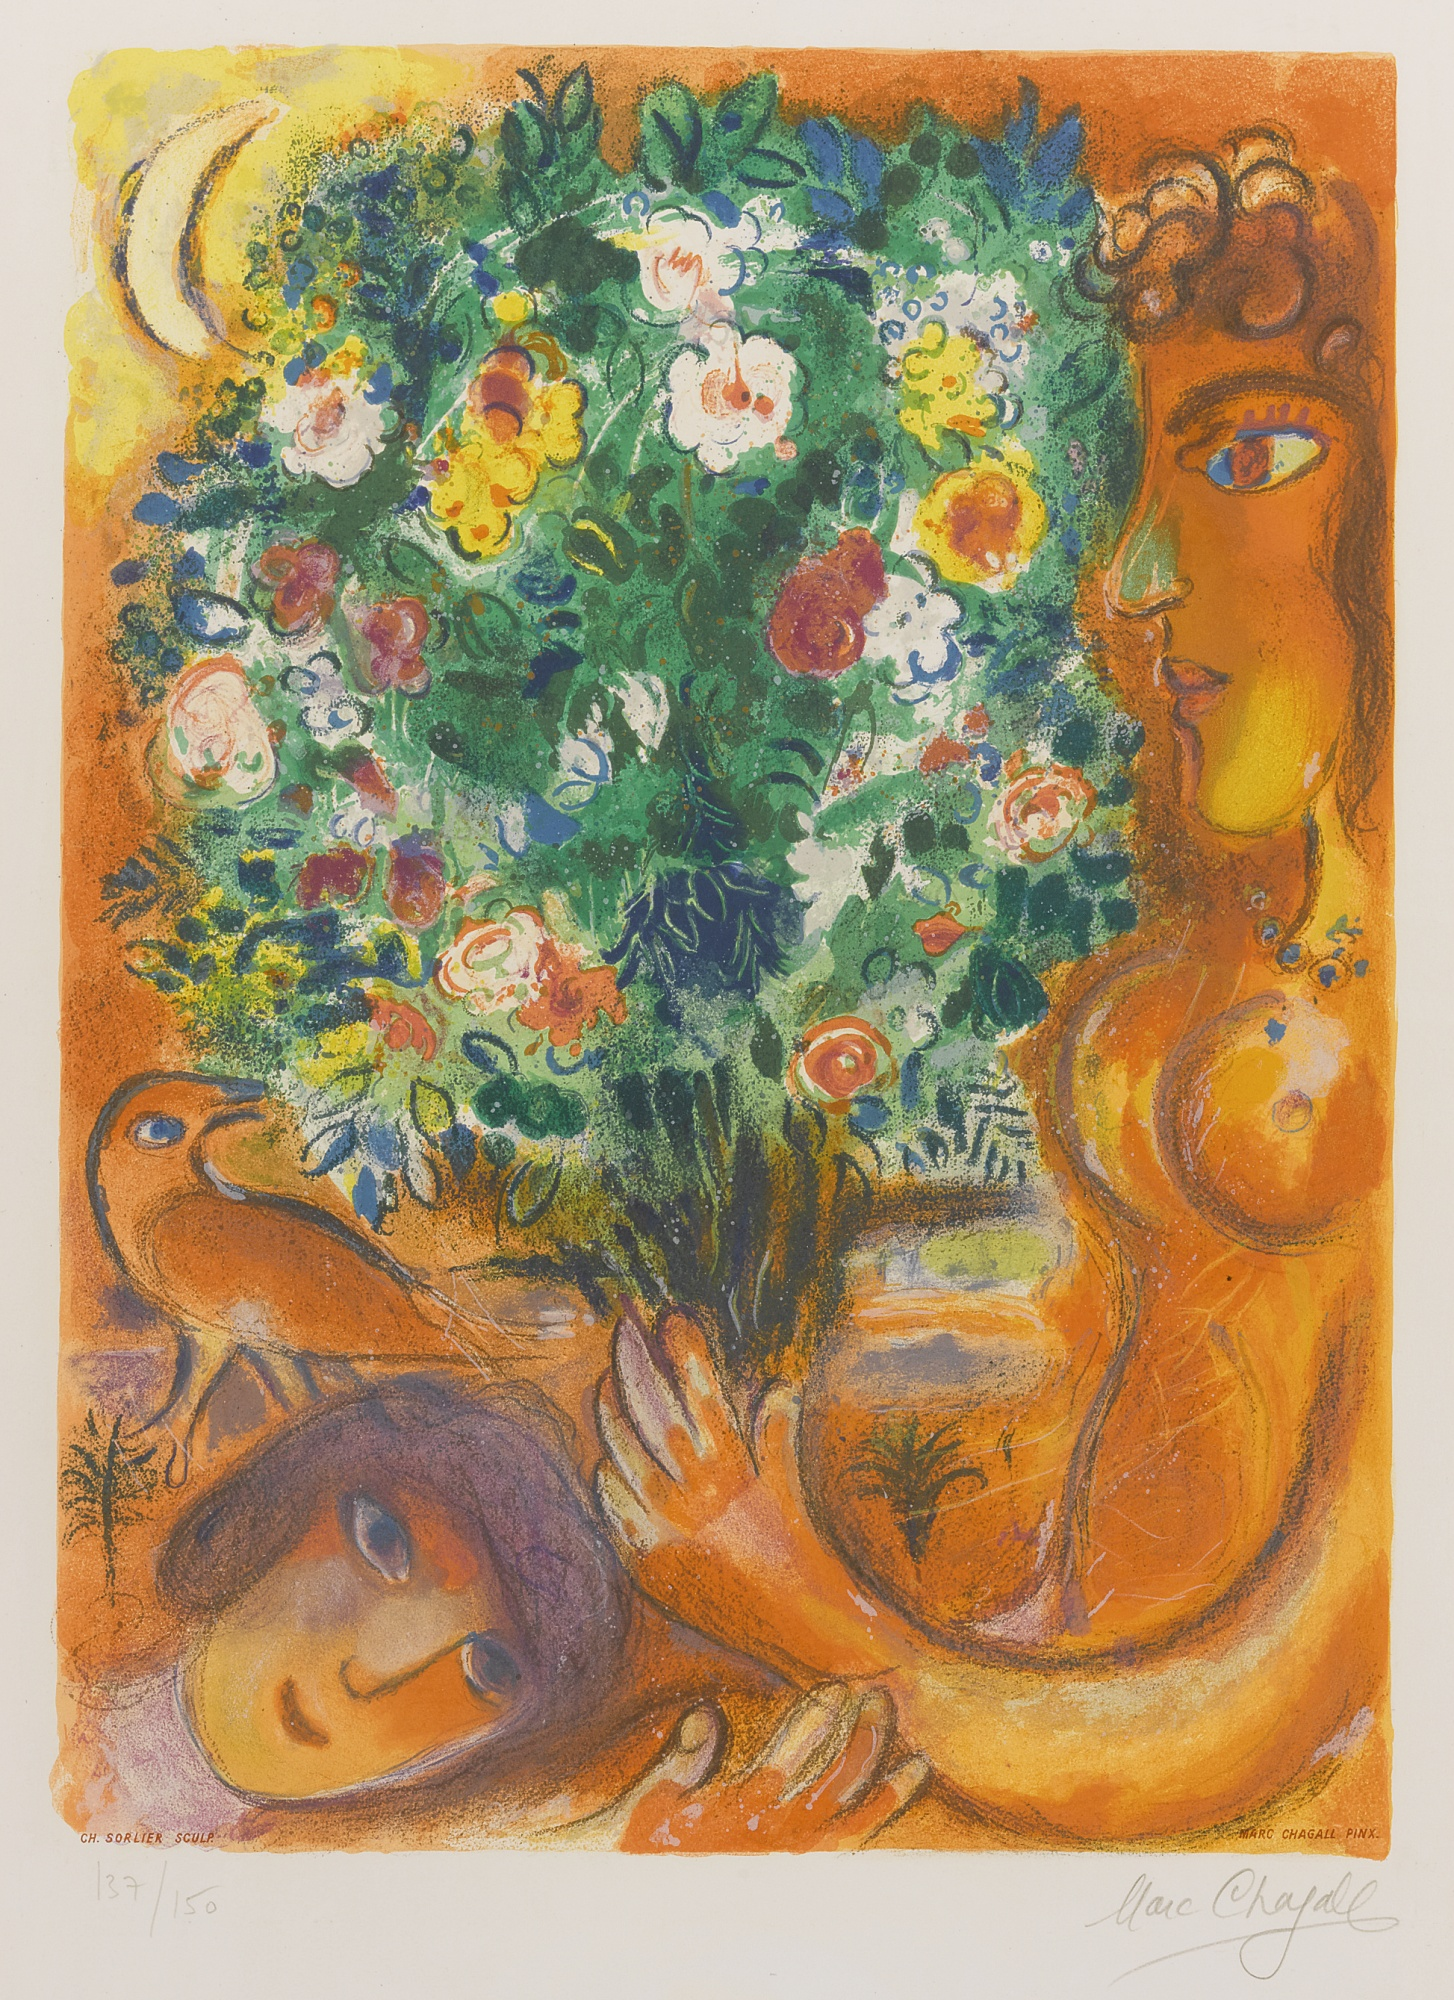 Charles Sorlier-Charles Sorlier after Marc Chagall - Femme Au Bouquet (M. Cs 37)-1967